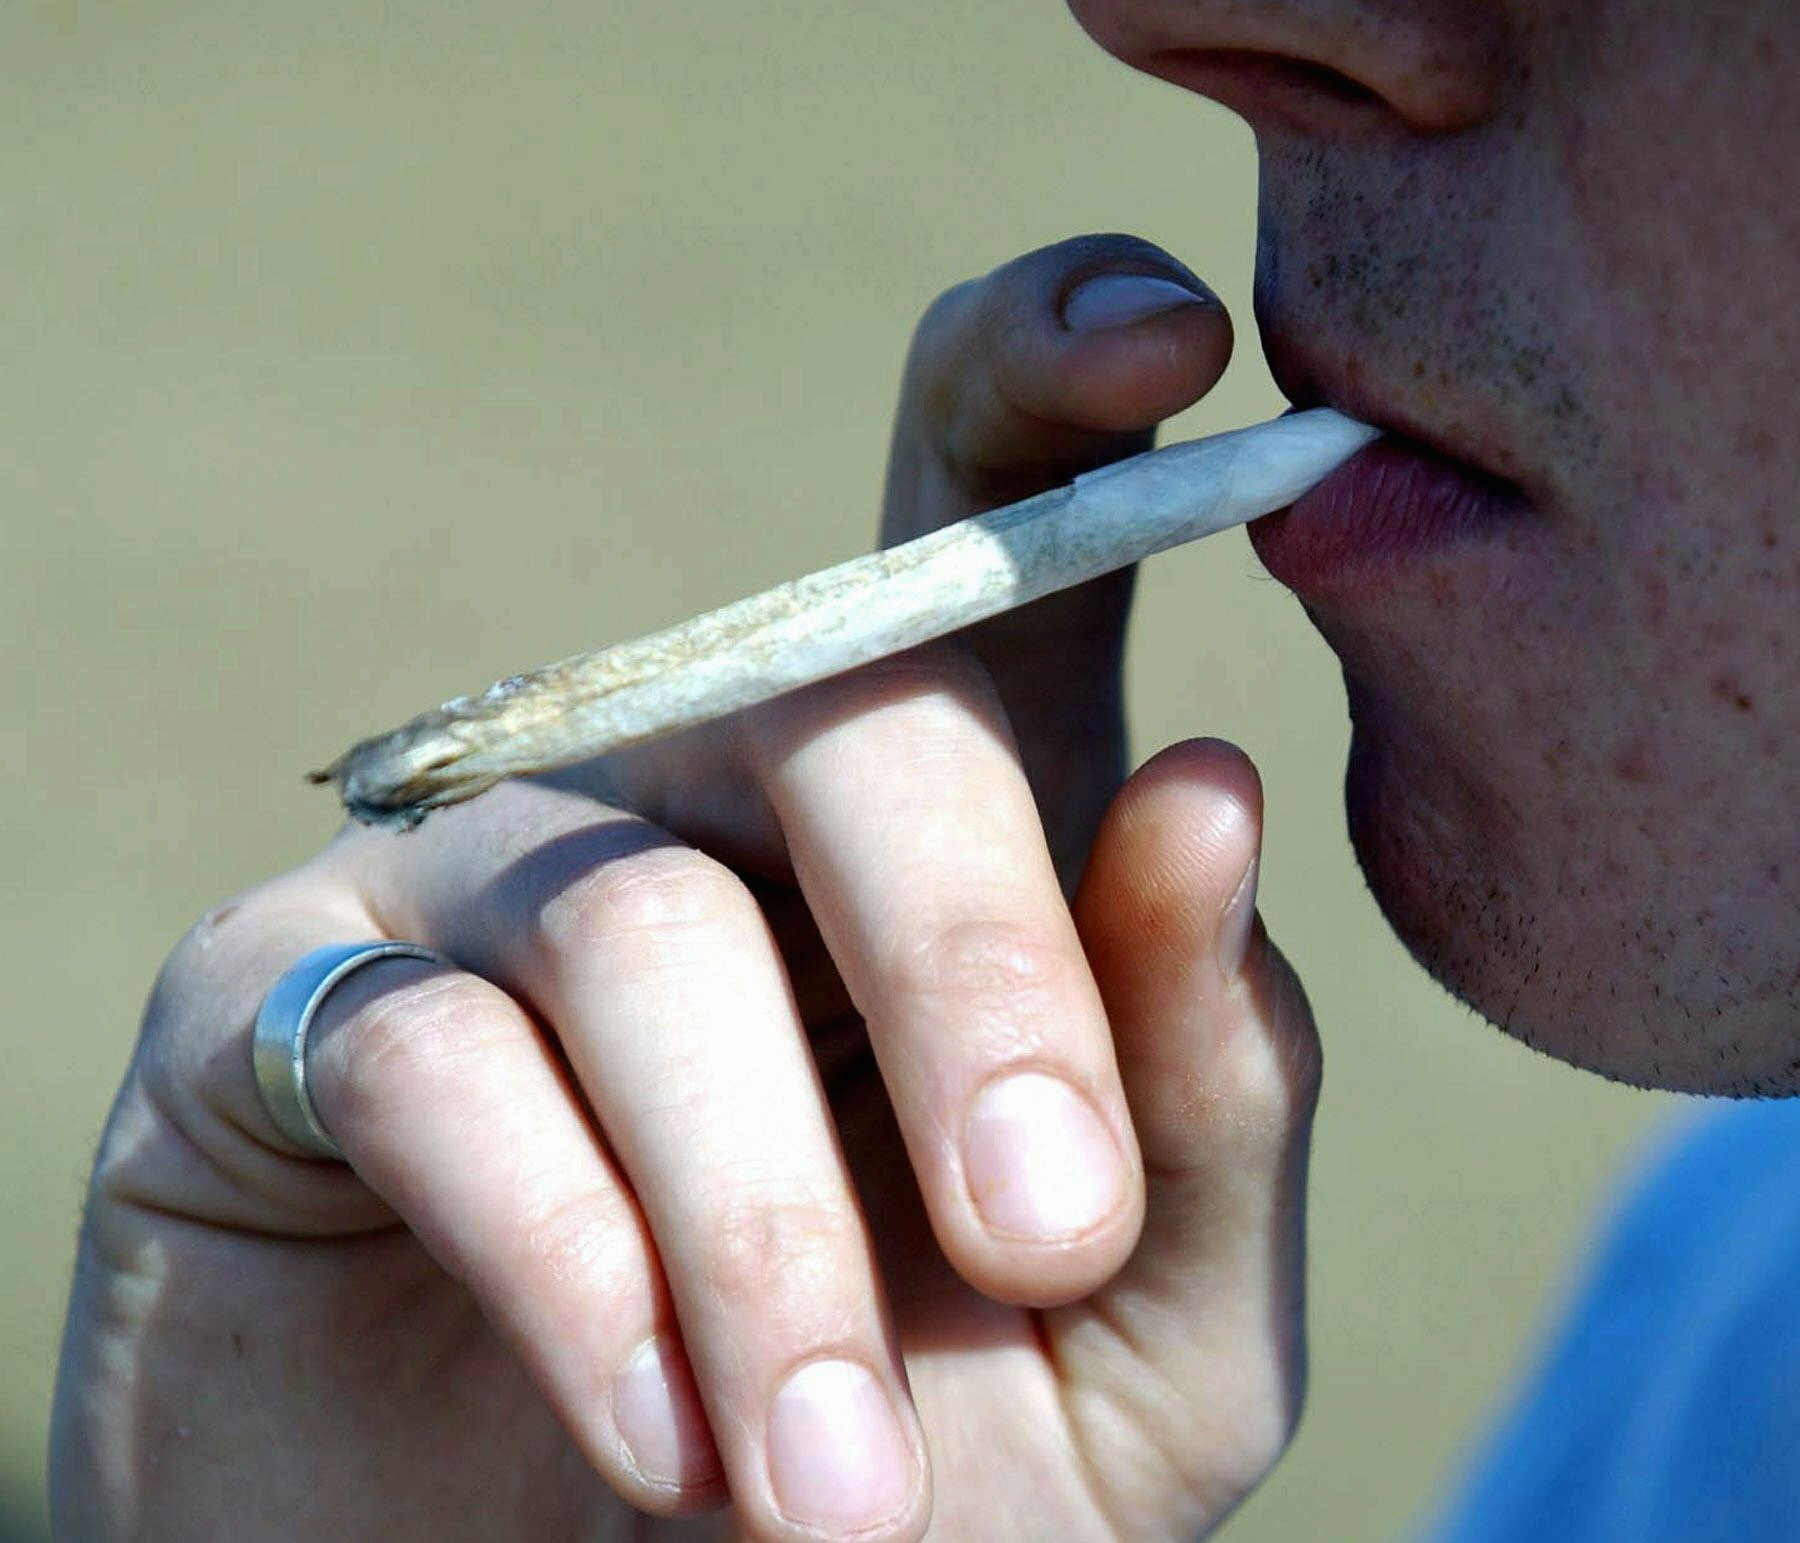 HEALTH: A new partnership has been set up to help recreational drug users